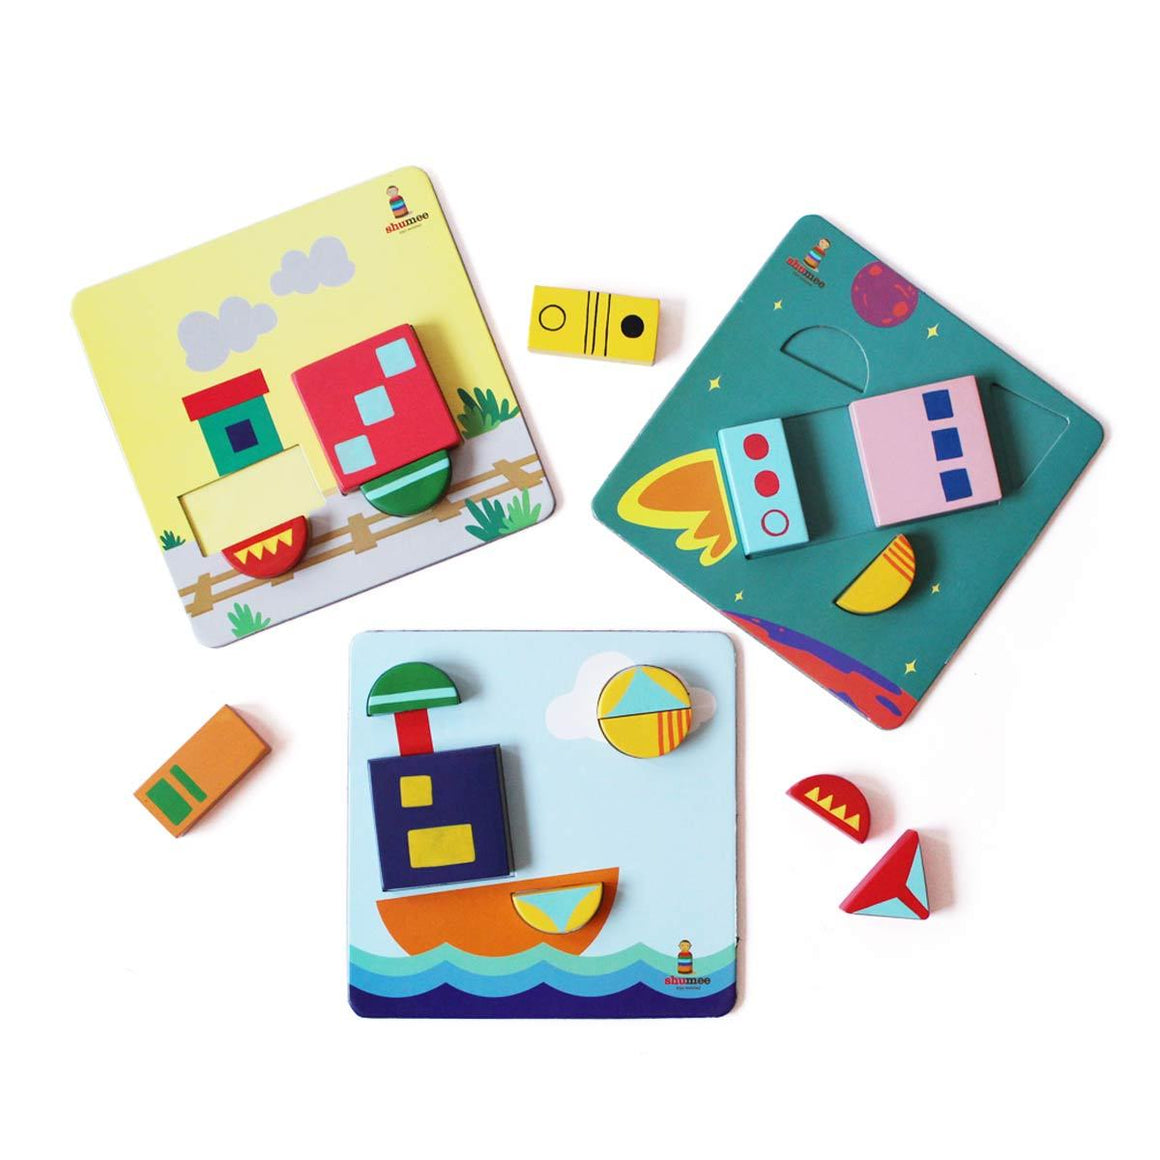 Wooden Shape Sorter Kids Puzzle Blocks Toy | Free Shipping - Shumee